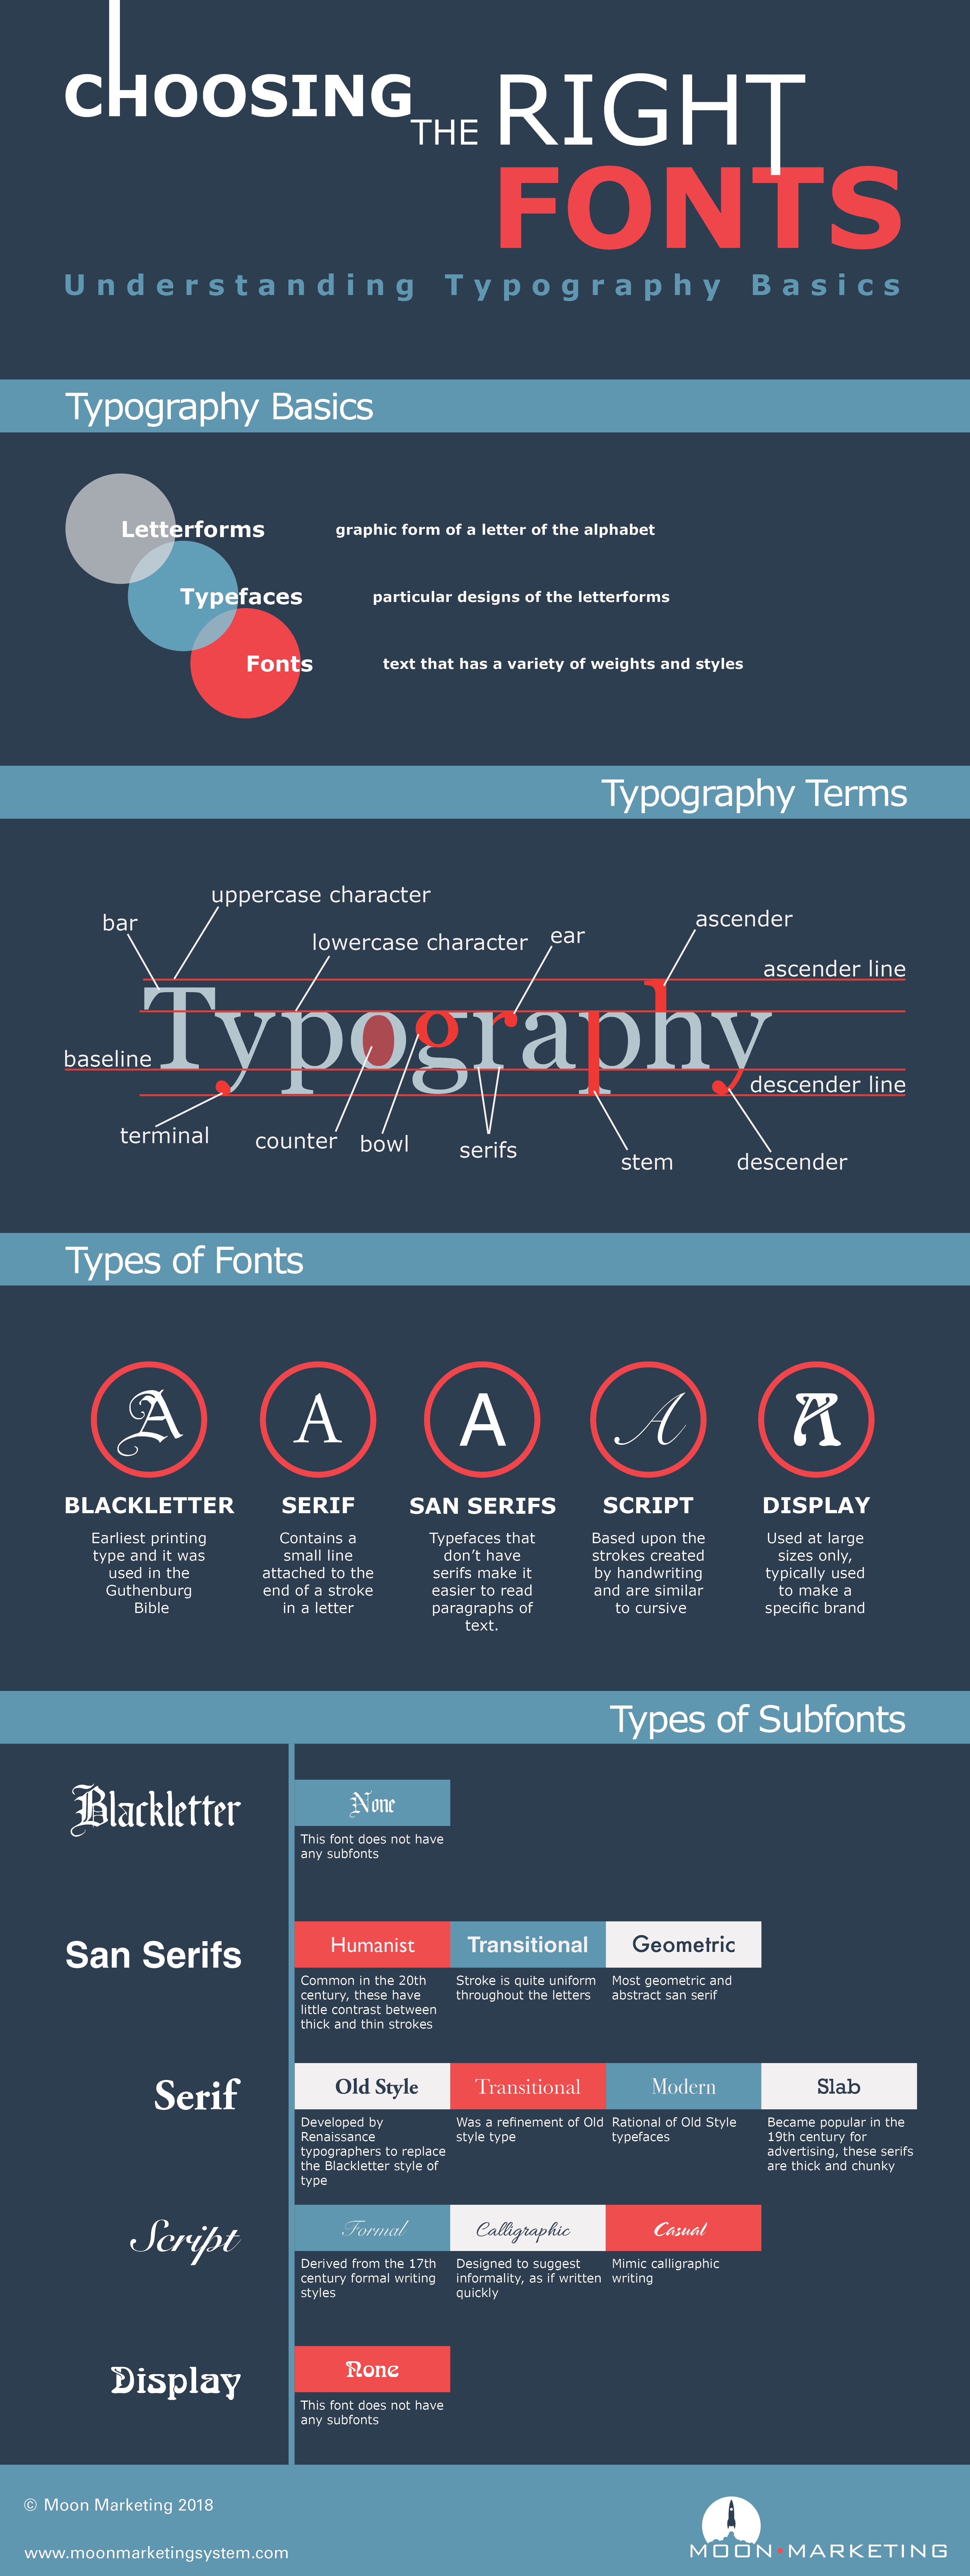 Choosing the Right Font: The Basics of Typography [Infographic]